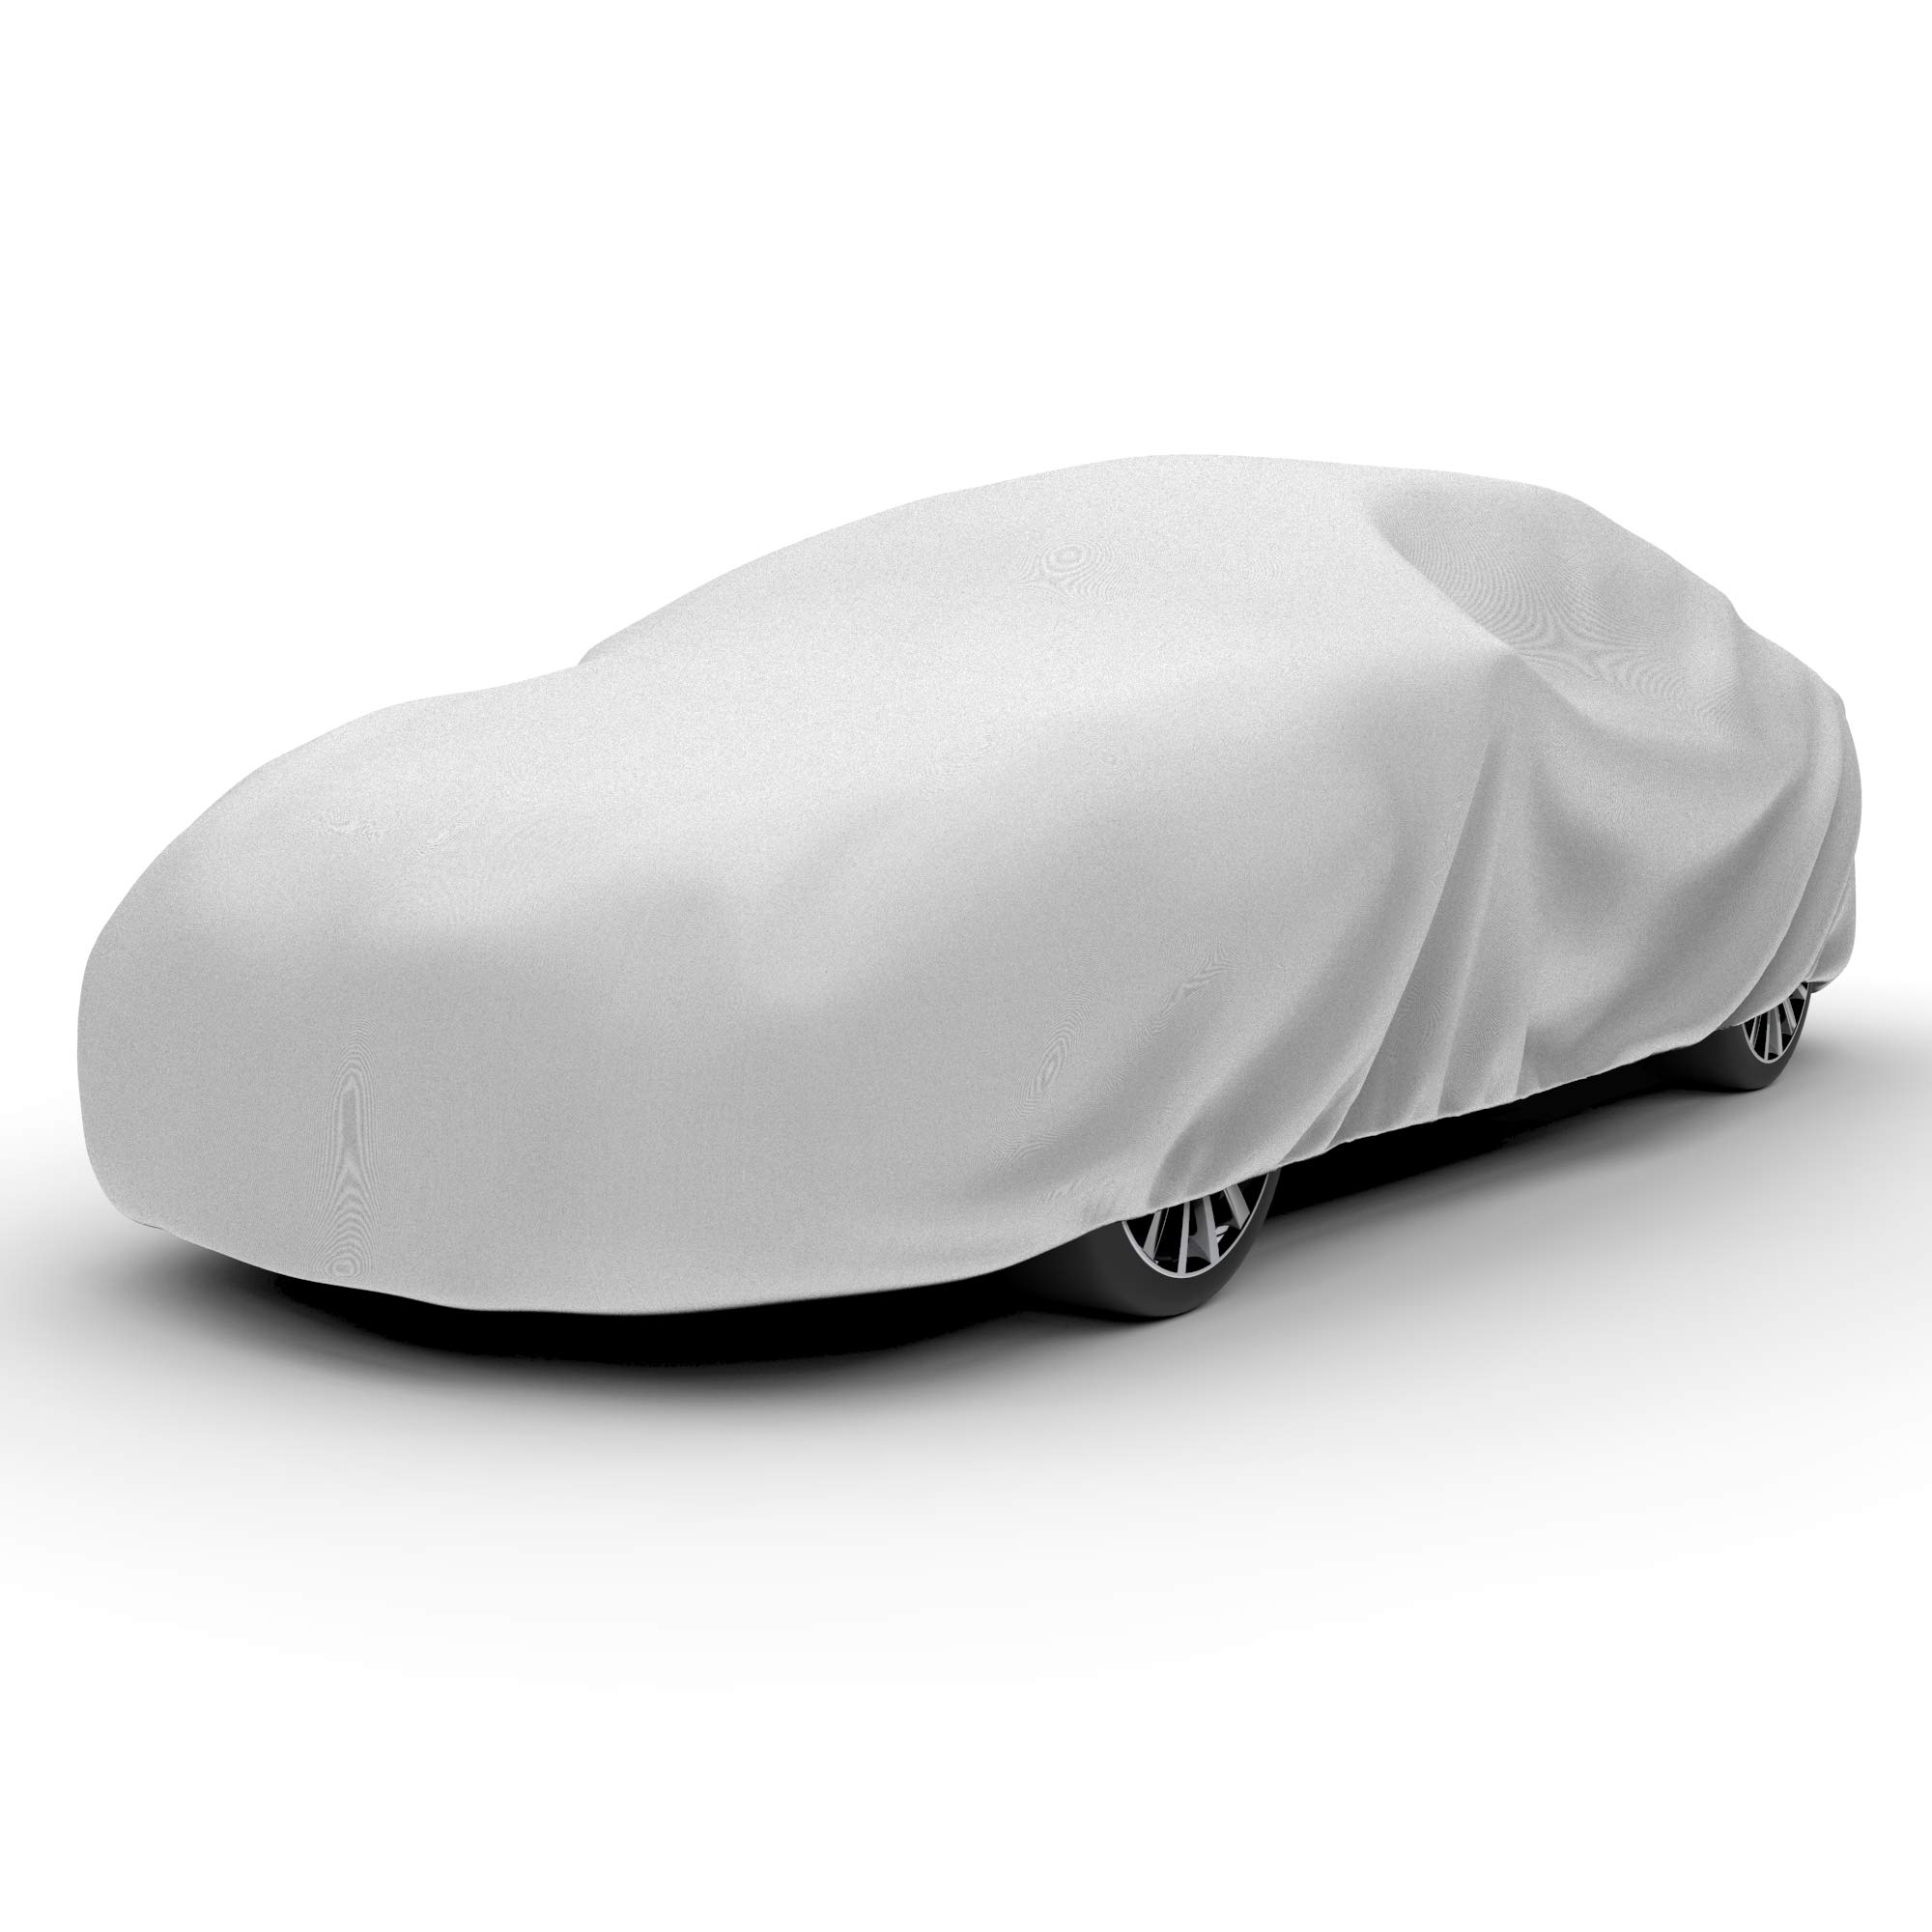 Budge Lite Car Cover Indoor/Outdoor, Dustproof, UV Resistant, Car Cover Fits Sedans up to 200'', Gray by Budge